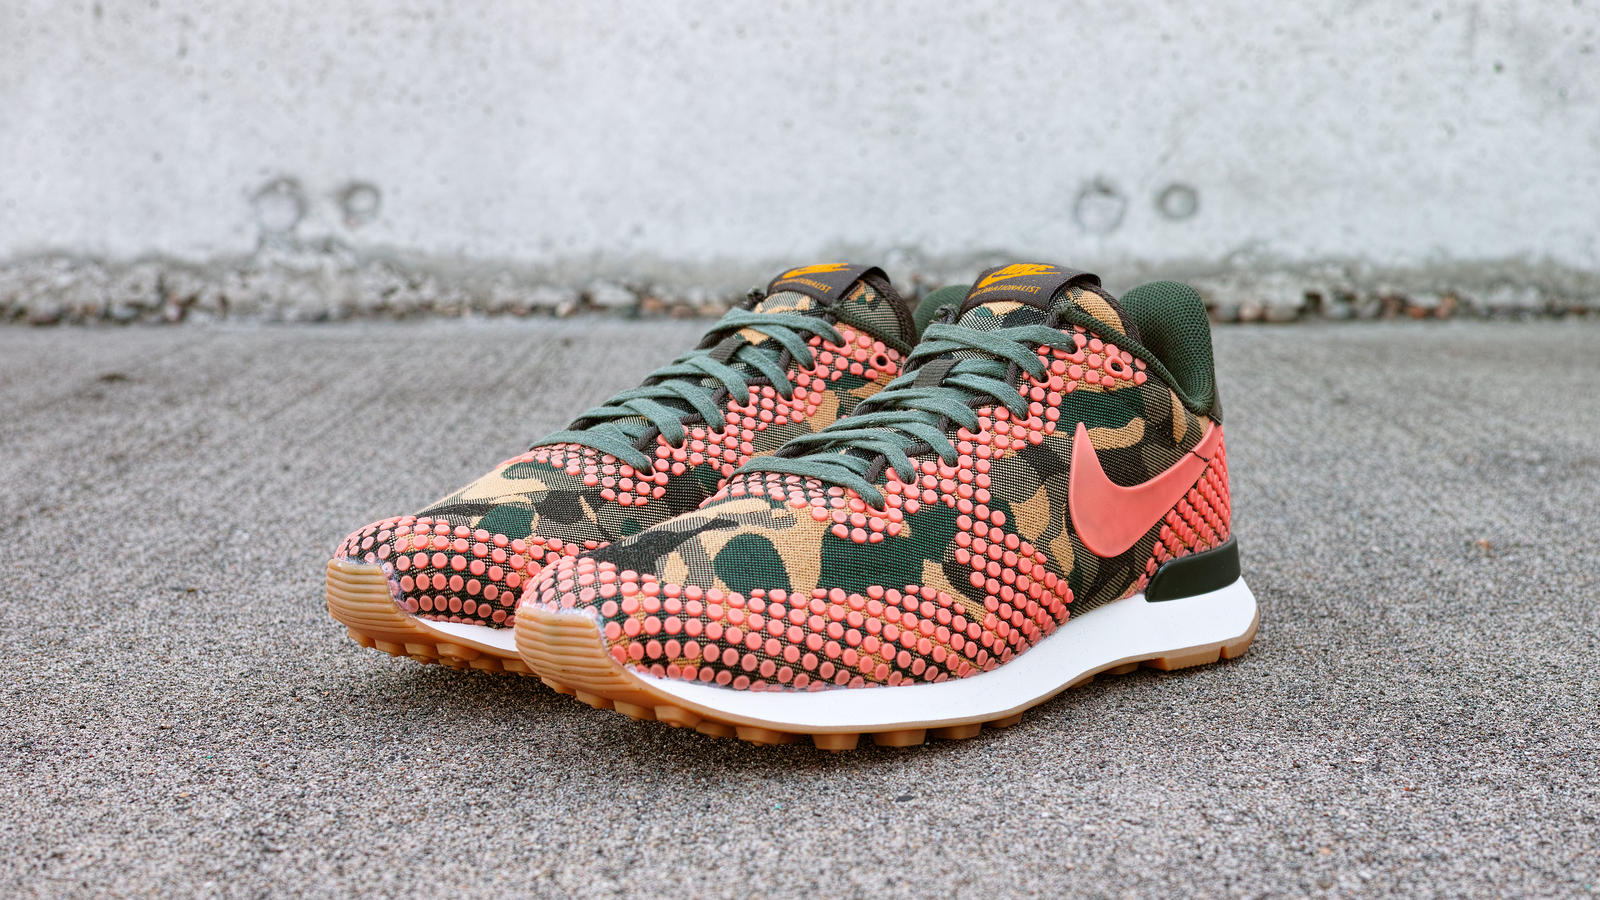 Nike internationalist jacquard premium 2 hd 1600